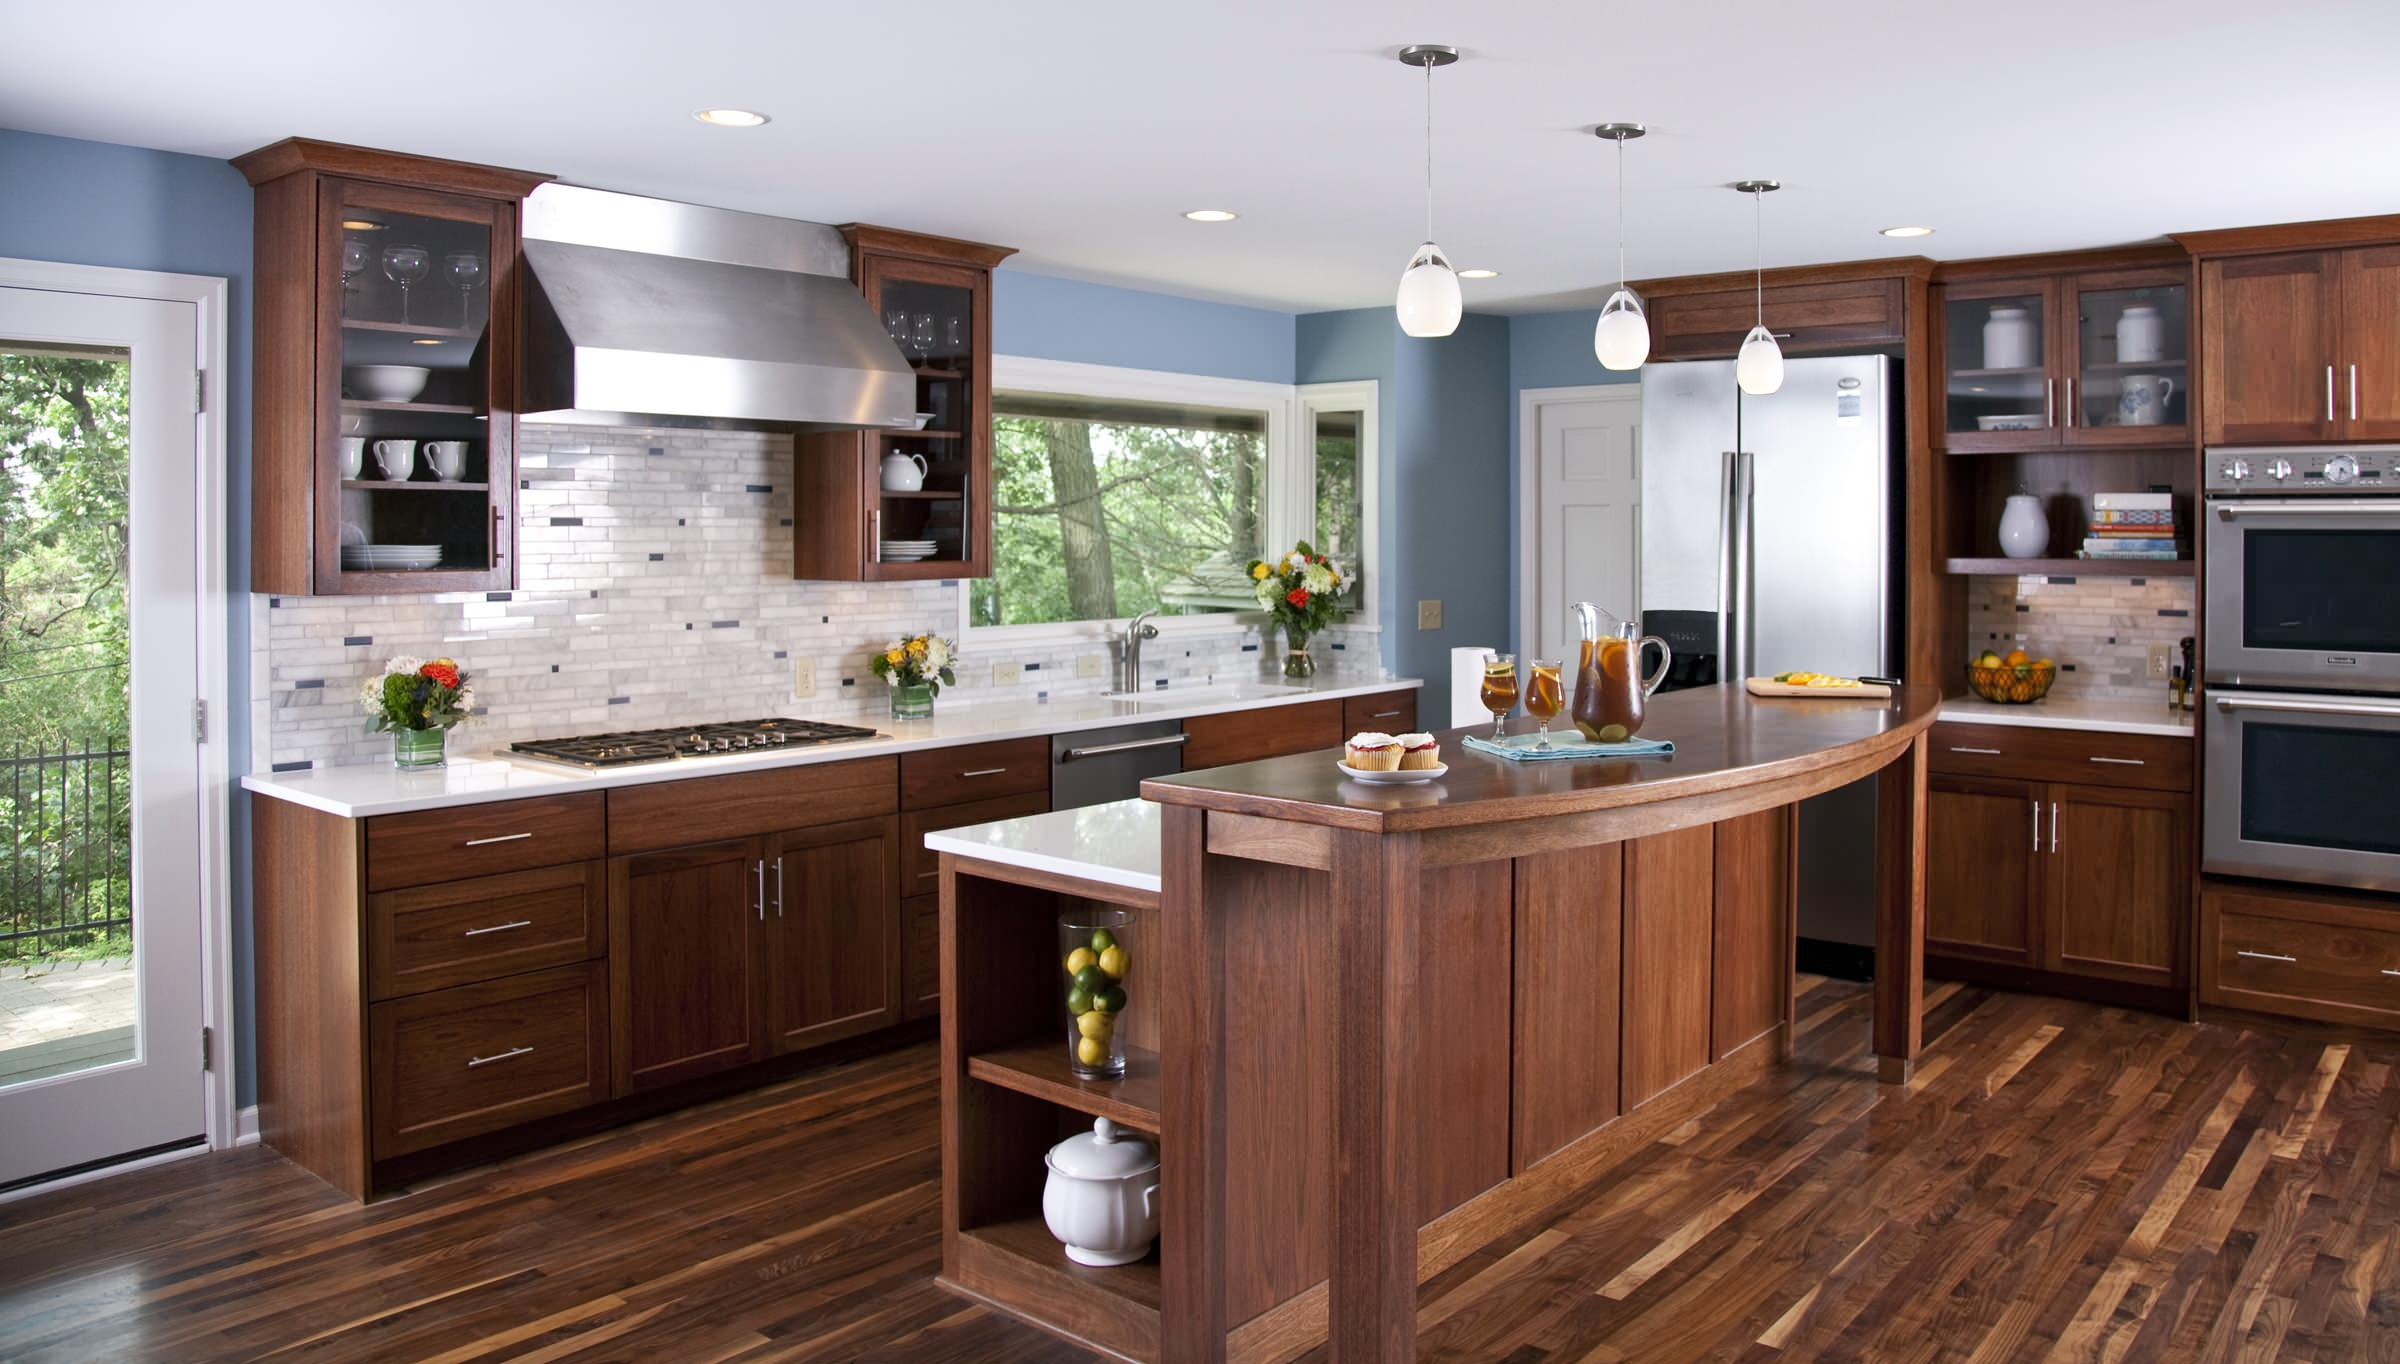 Gray countertops with white cabinets Transitional Kitchen dark wood floors glass door cabinets pietra cardosa limestone